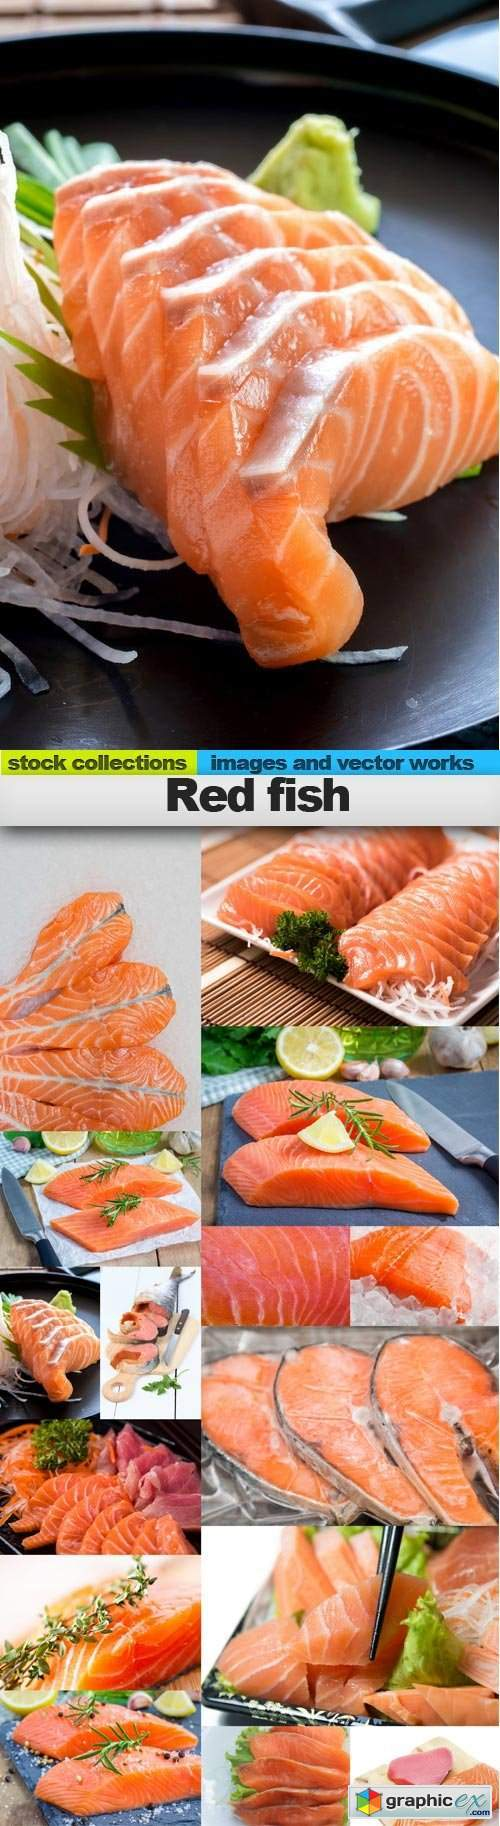 Red fish, 15 x UHQ JPEG